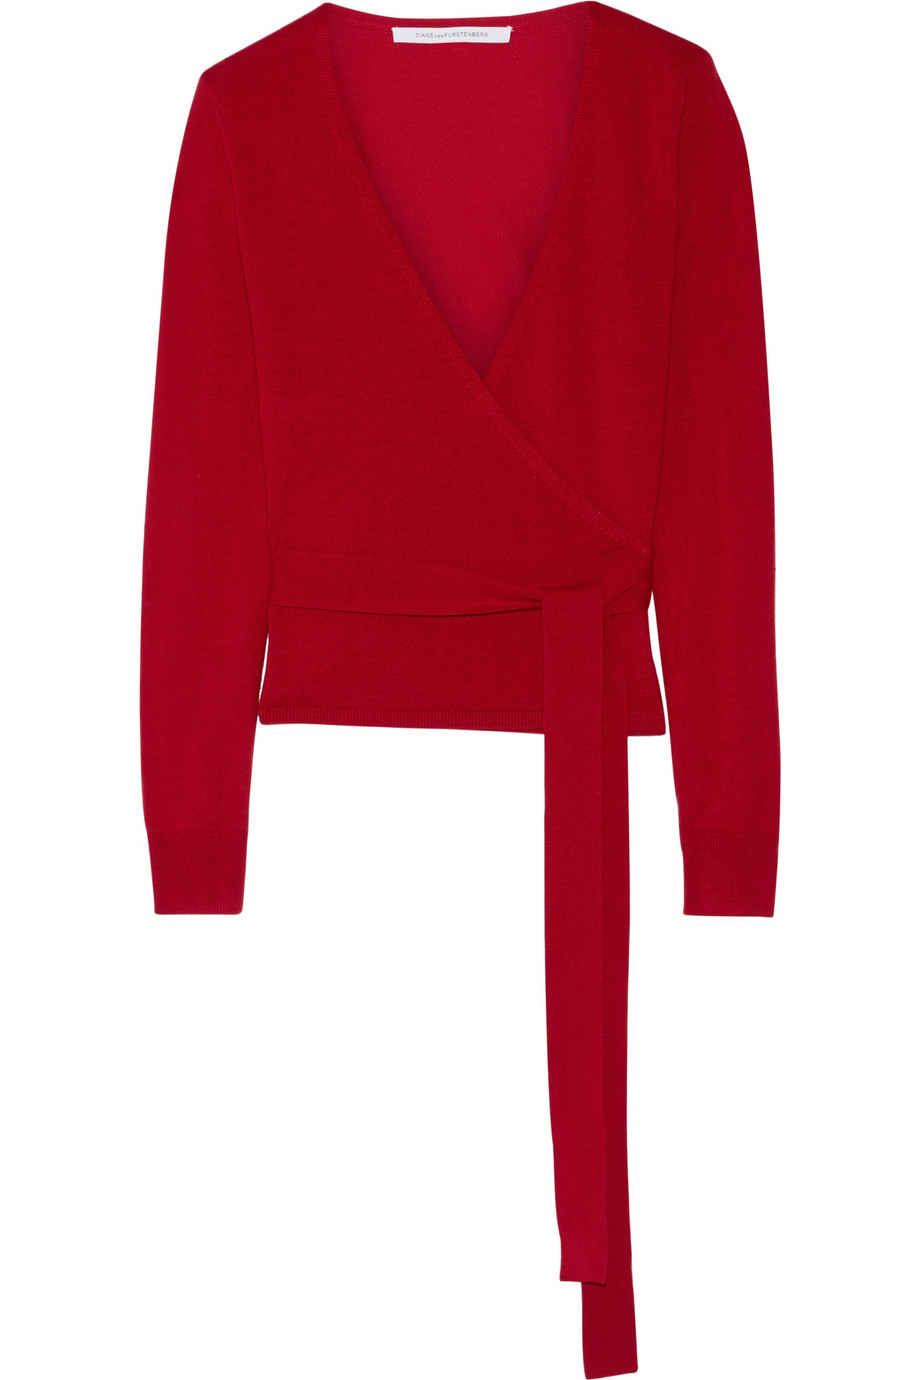 DVF  cardigan - was $270, now $189